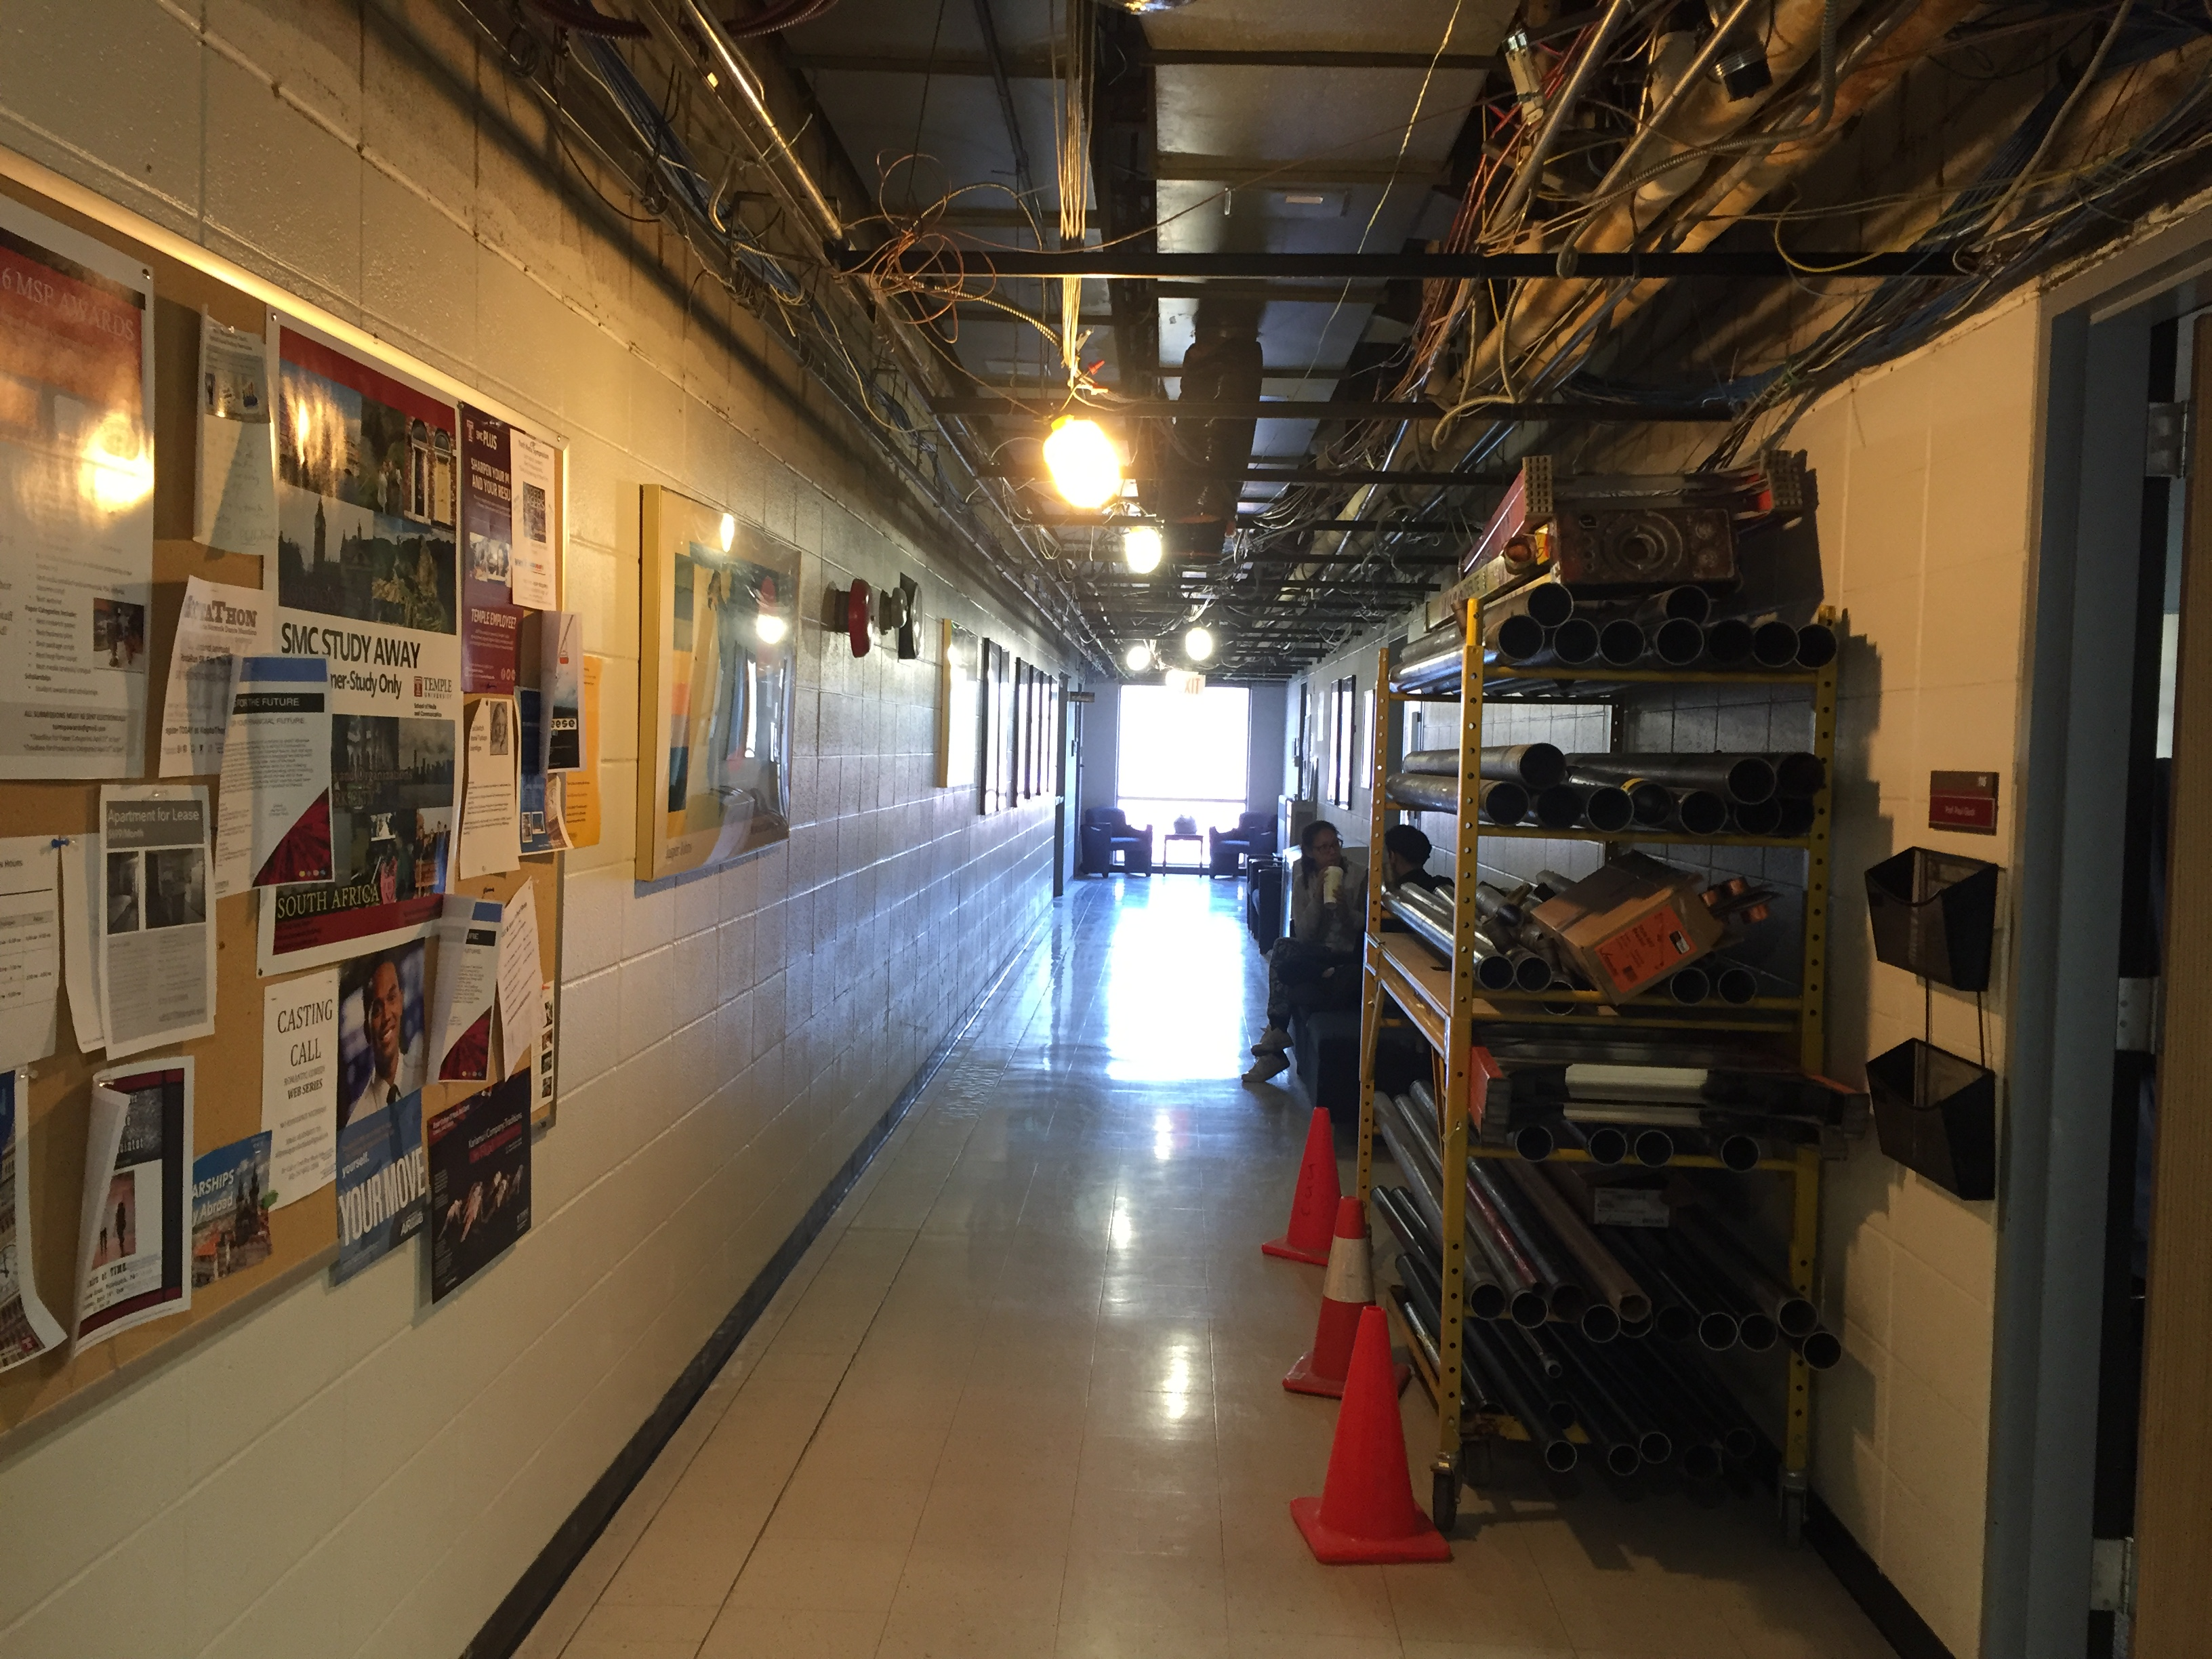 Annenberg Hall undergoes construction to install new alarm and sprinkler system.